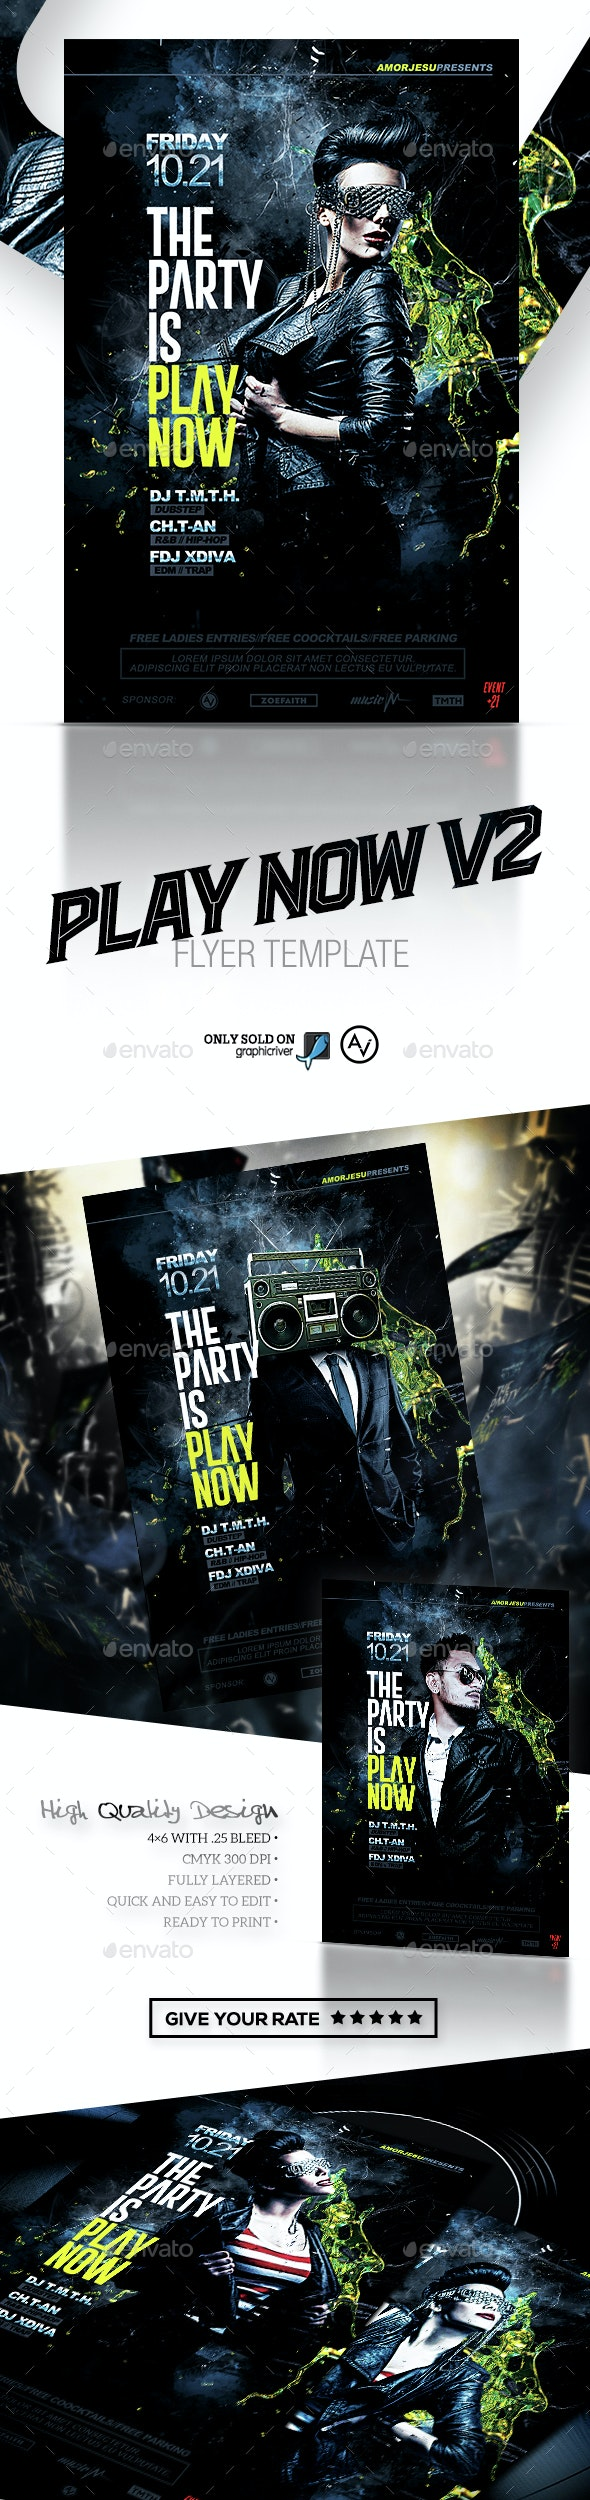 Play Now Flyer Template V2 - Clubs & Parties Events